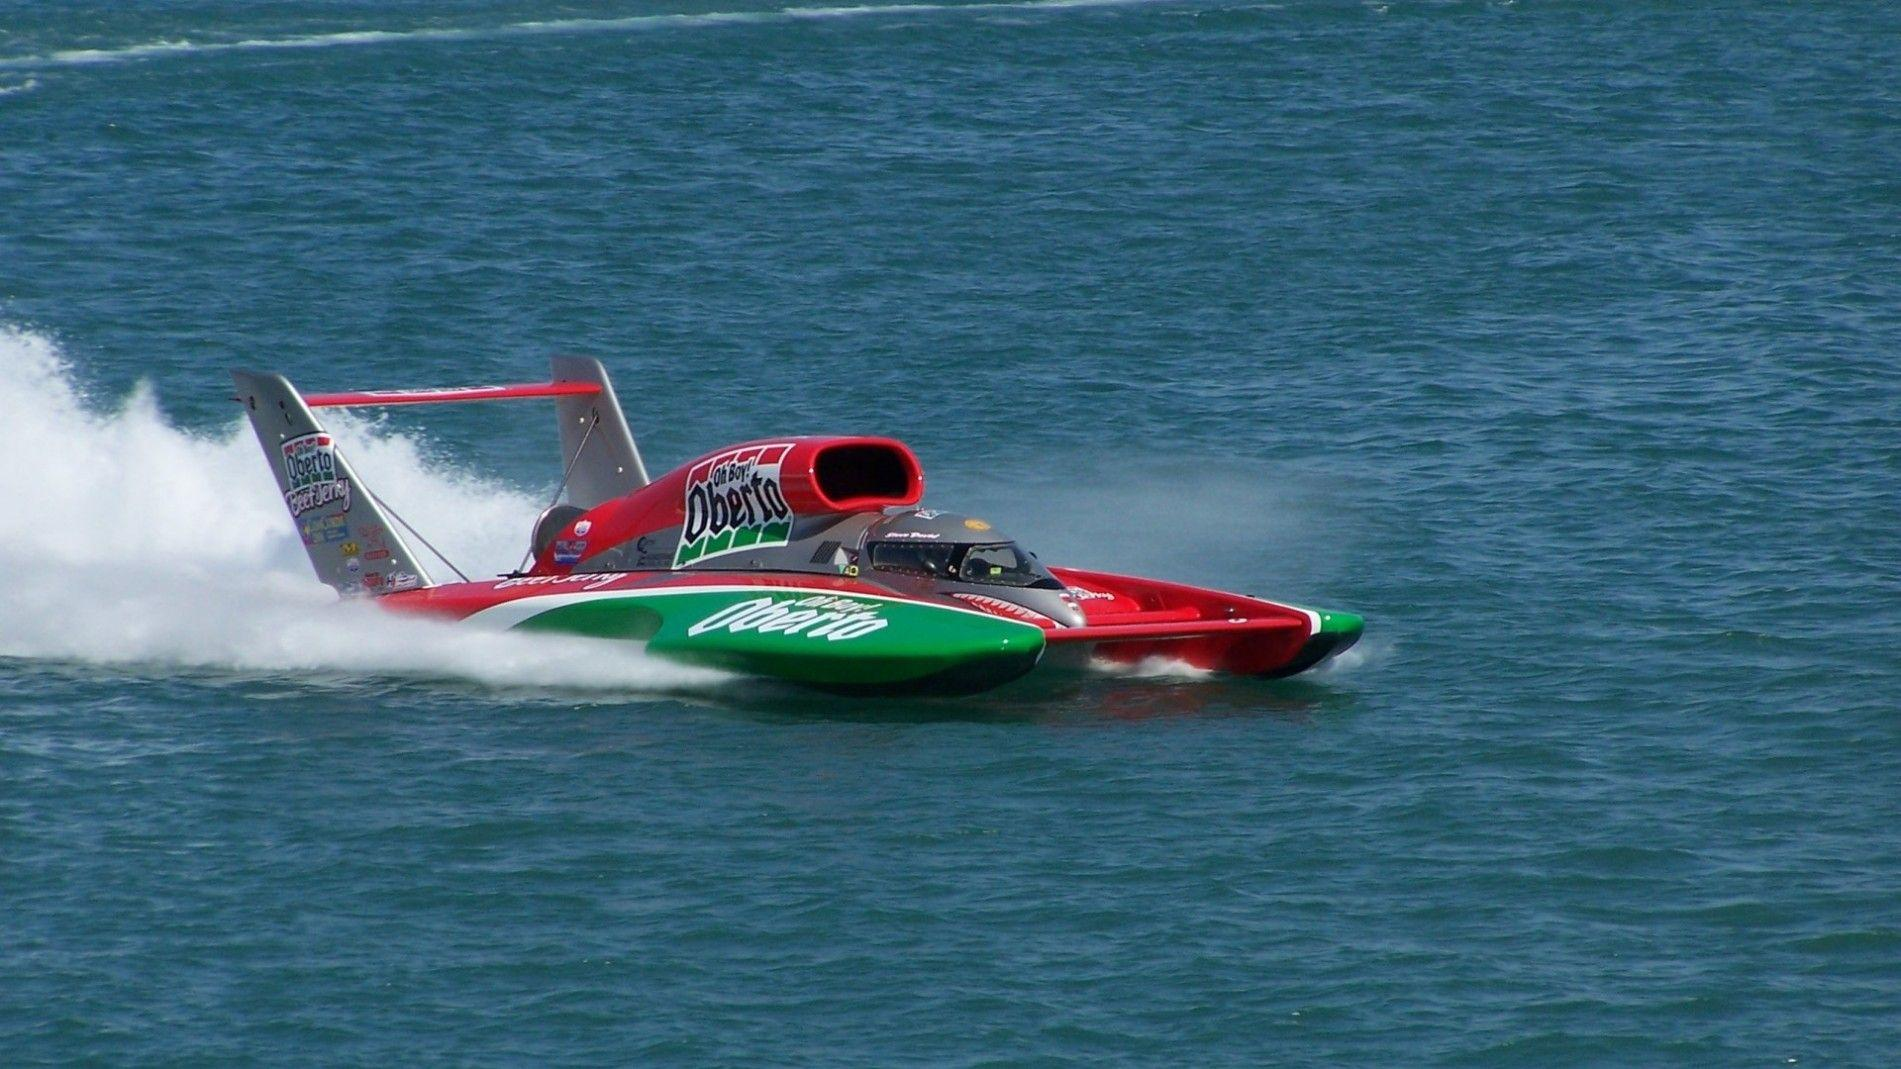 Racing high speed boat real high definition wallpapers | High ...